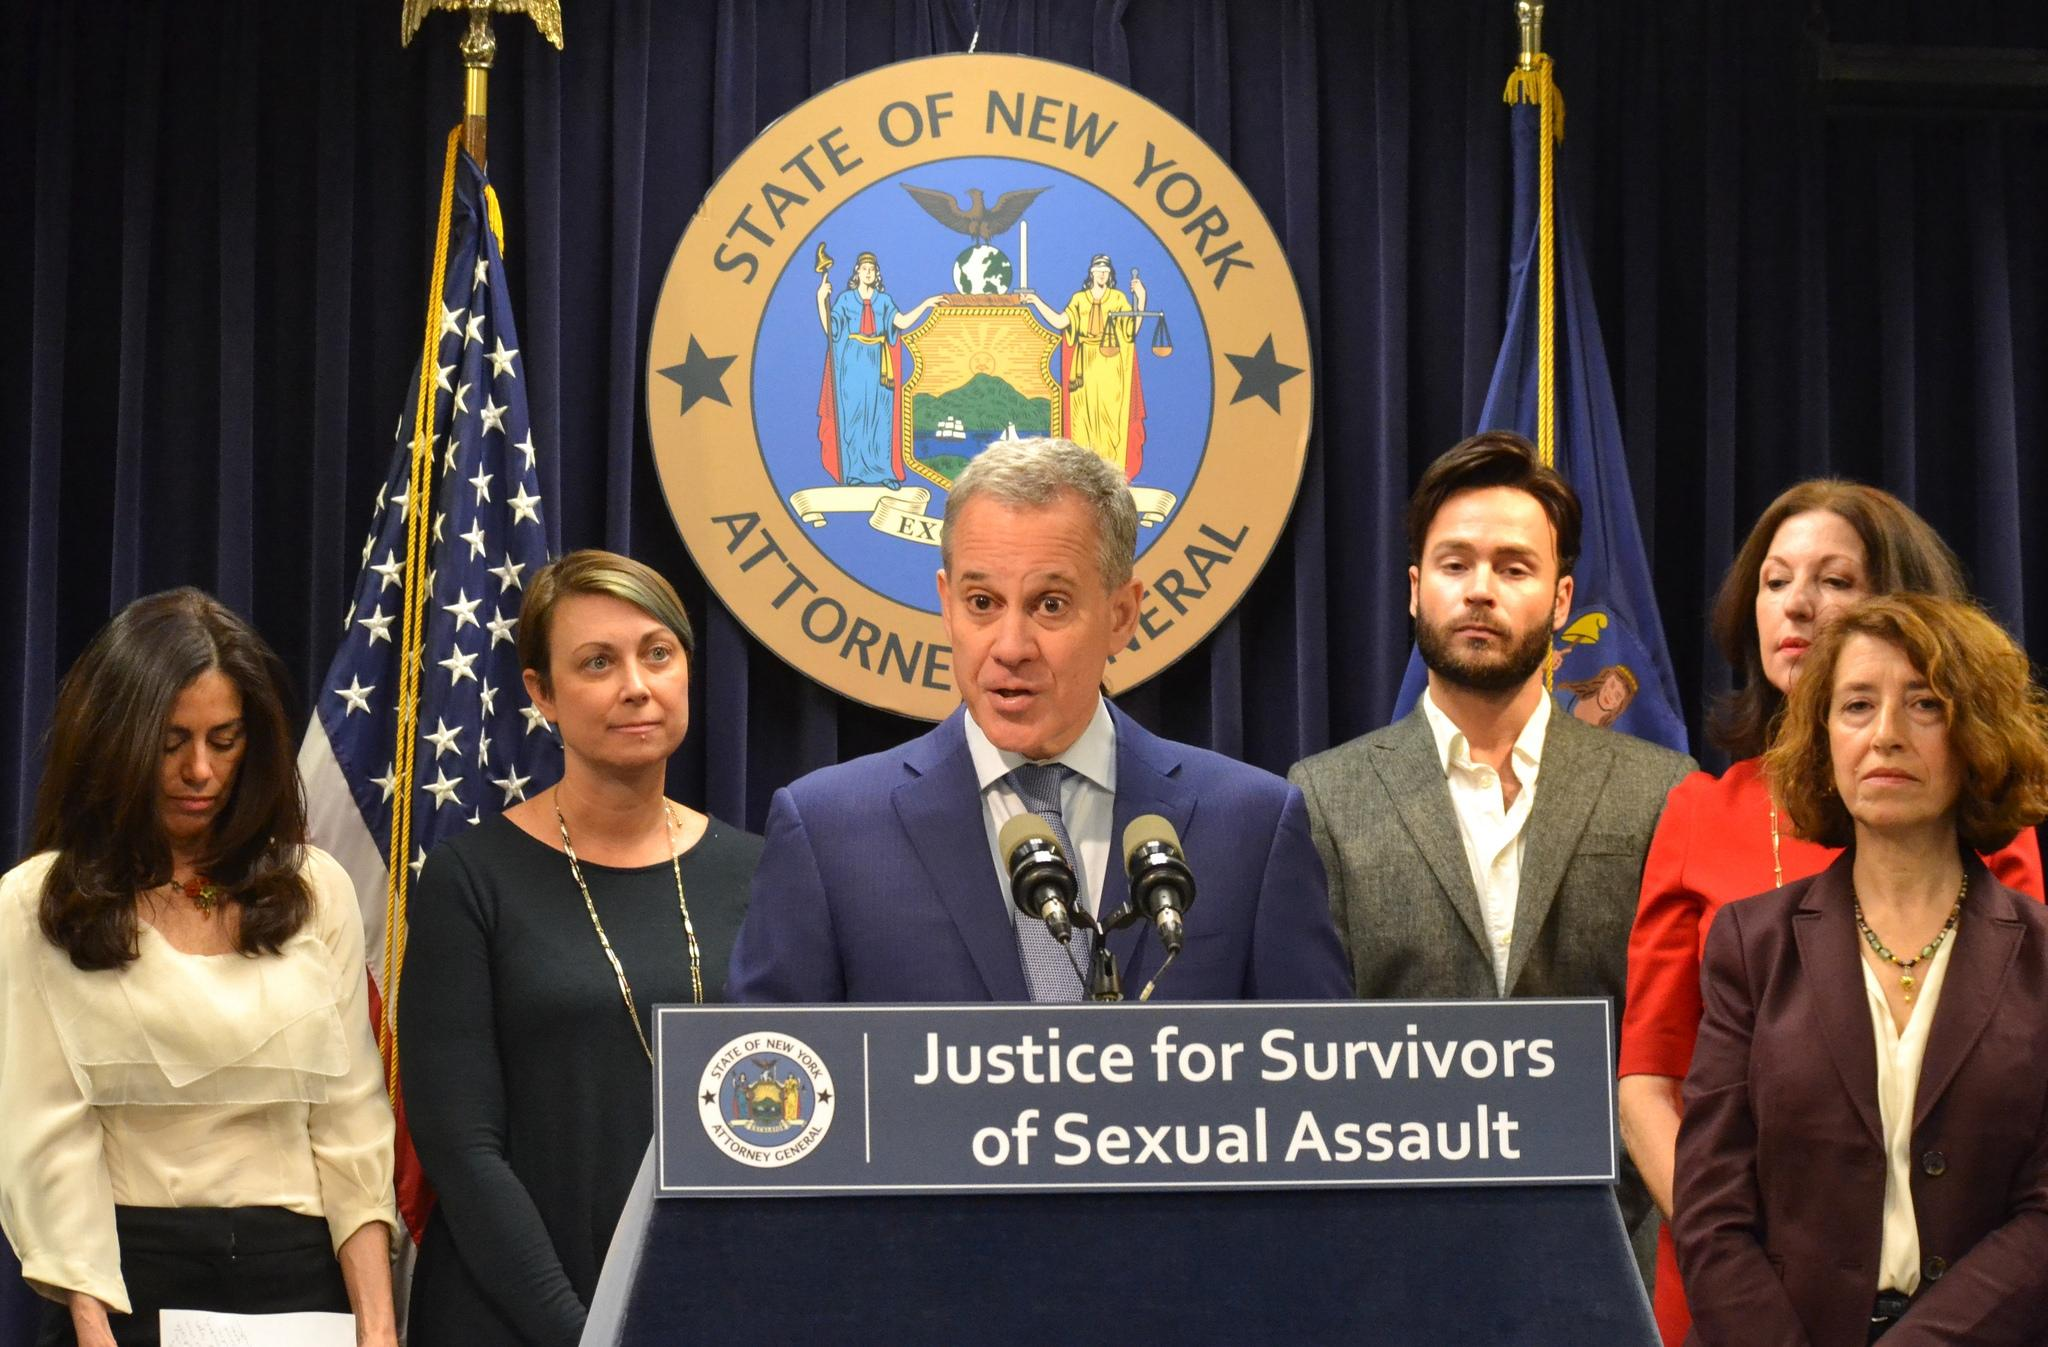 NY Attorney General resigns amid abuse allegations